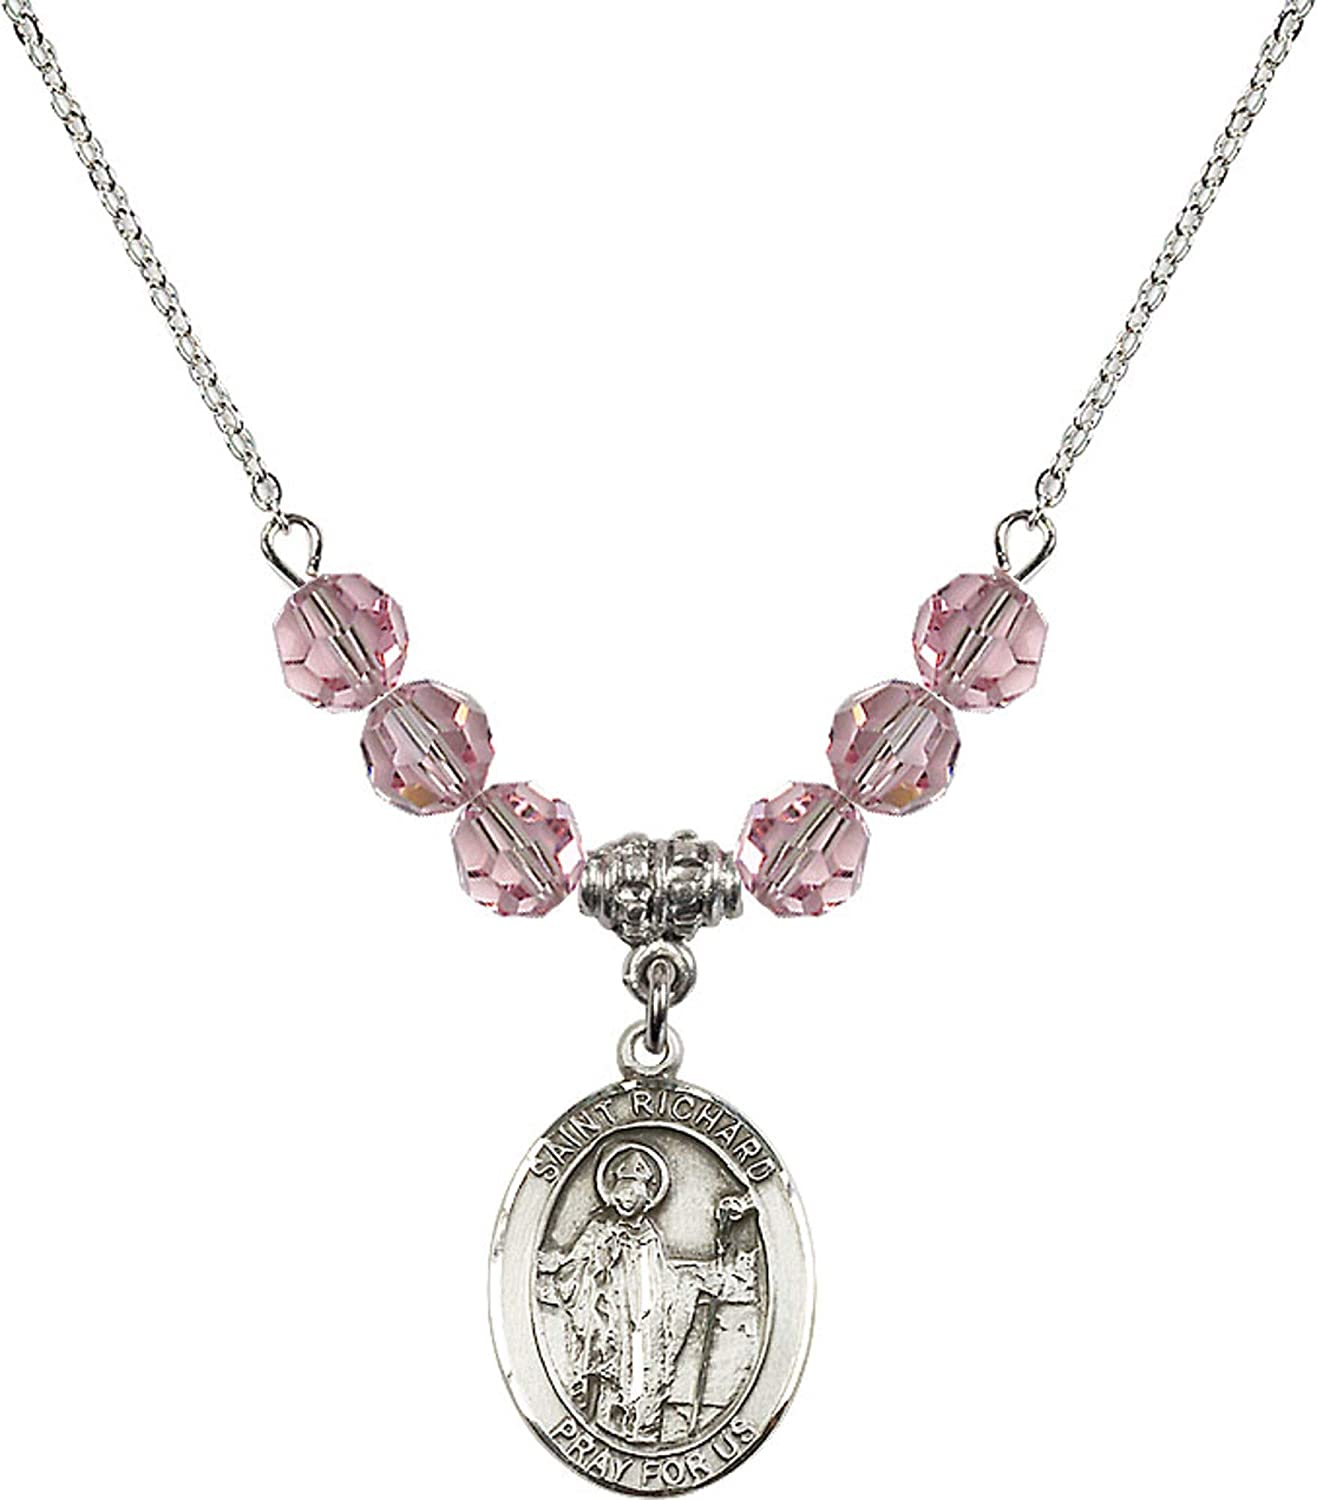 Bonyak Jewelry 18 Inch Rhodium Plated Necklace w// 6mm Light Rose Pink October Birth Month Stone Beads and Saint Richard Charm